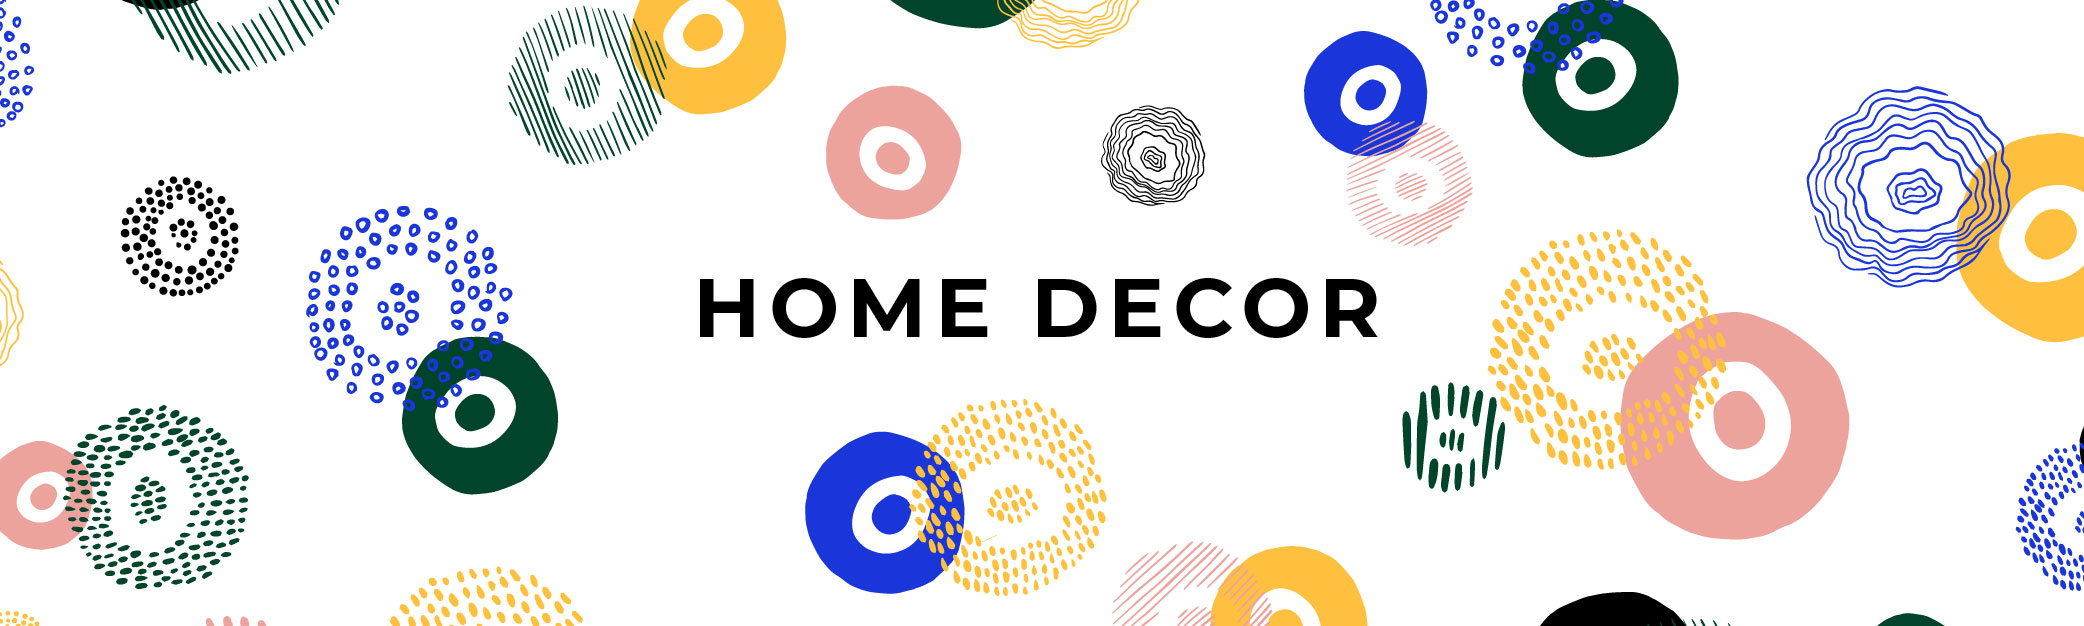 PATTERN_-_CATEGORIES-05